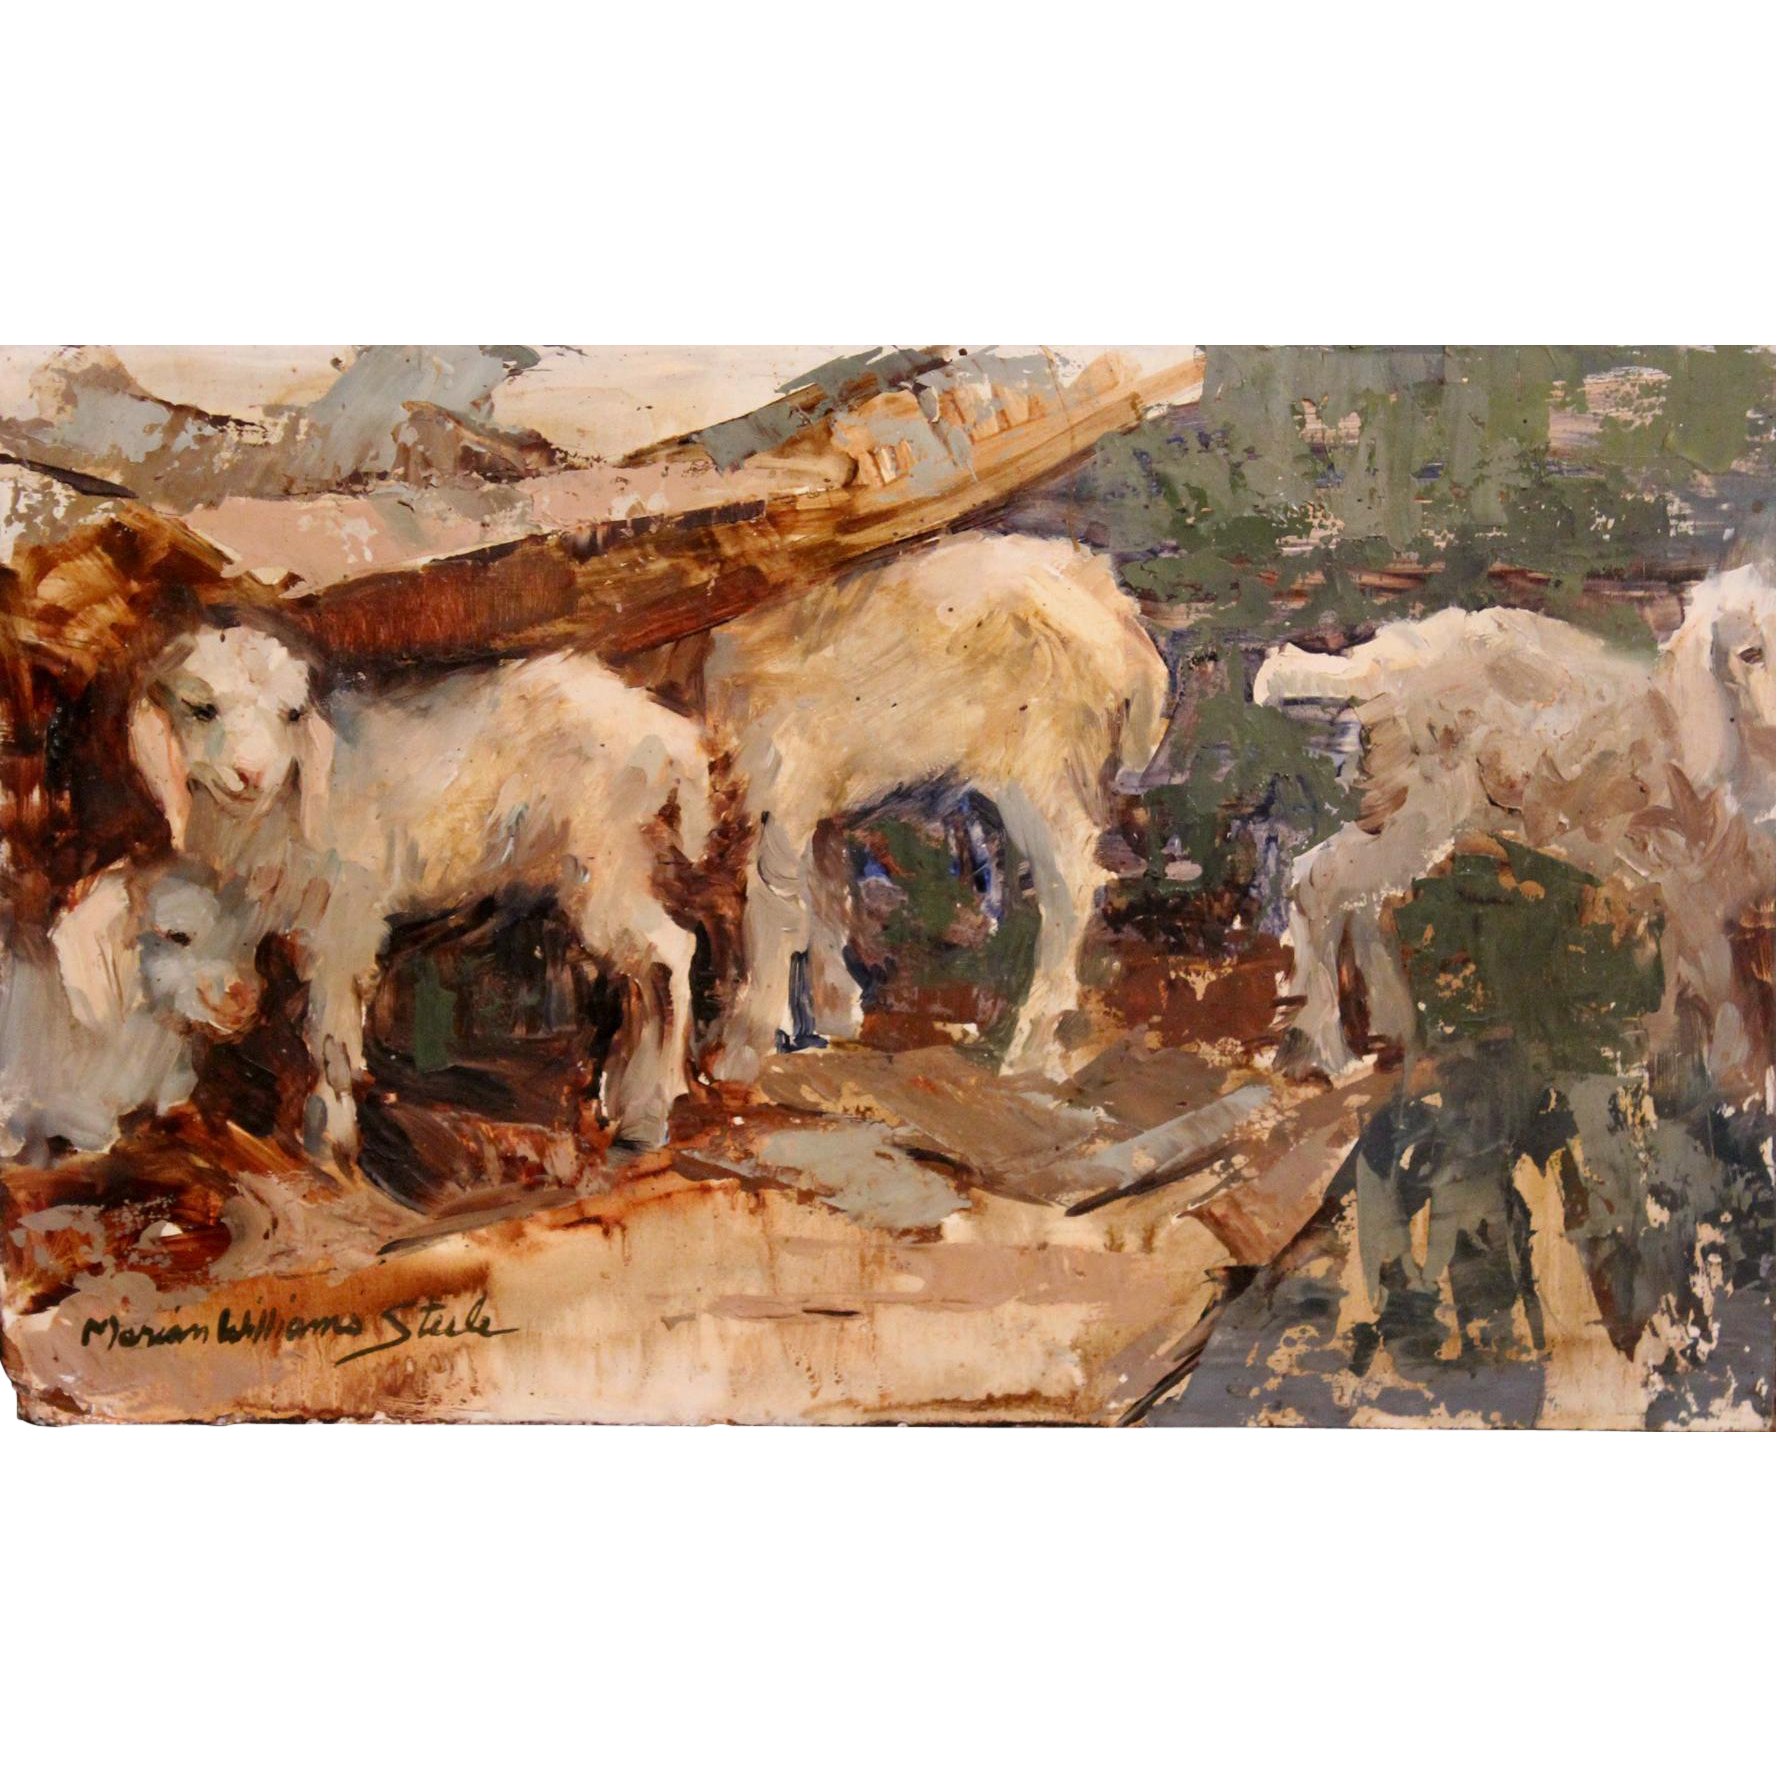 Marian Williams Steele Impressionist Oil Painting of Lambs or Sheep